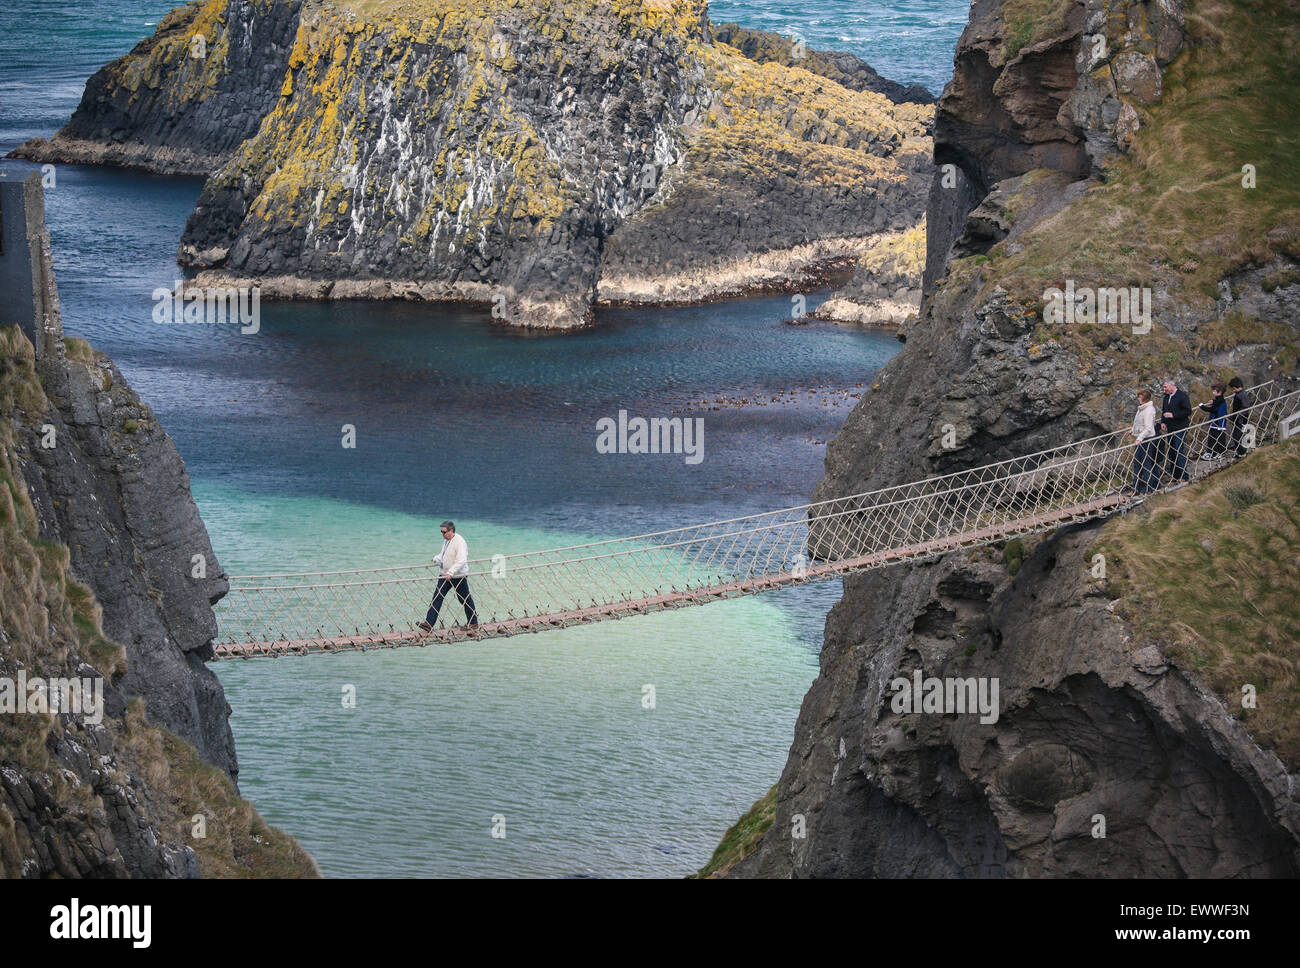 Crossing Carrick a Rede rope bridge, a suspension bridge which spans 20 metres from the mainland to the tiny Carrick - Stock Image